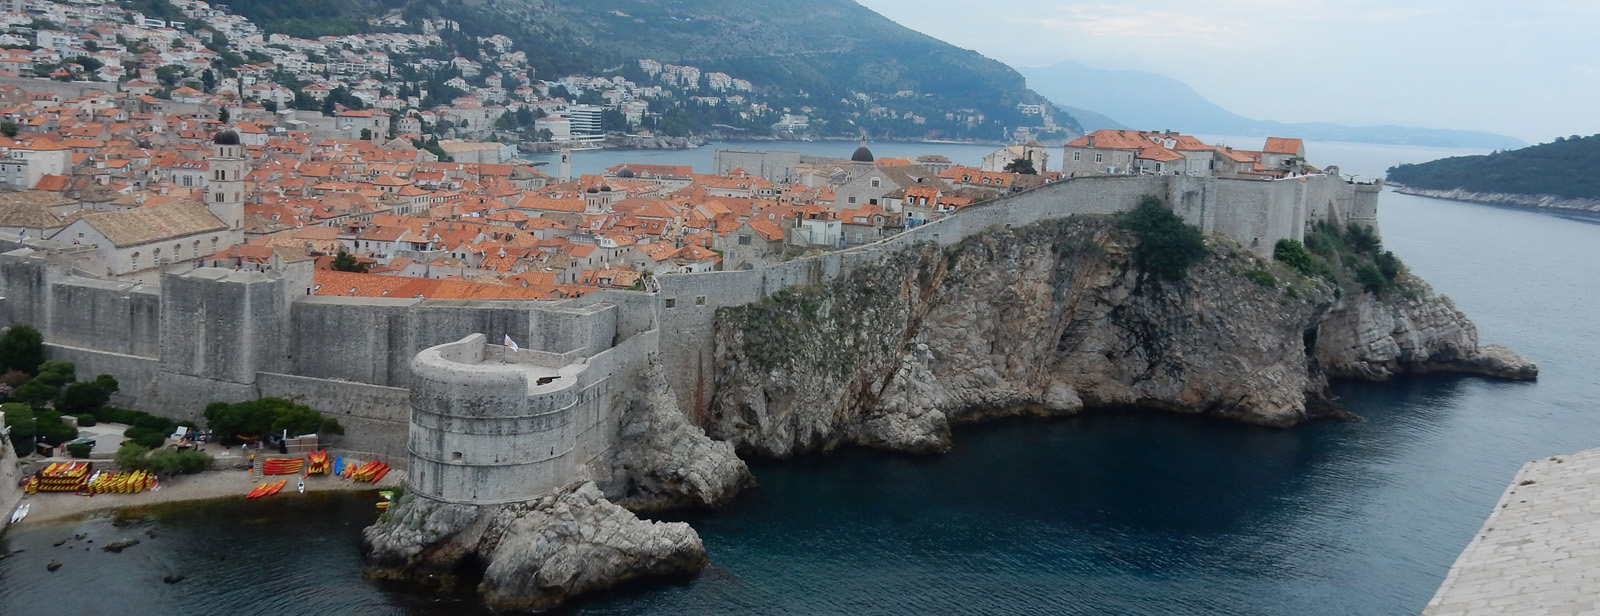 Dubrovnik und Lokrum – Game of Thrones hautnah